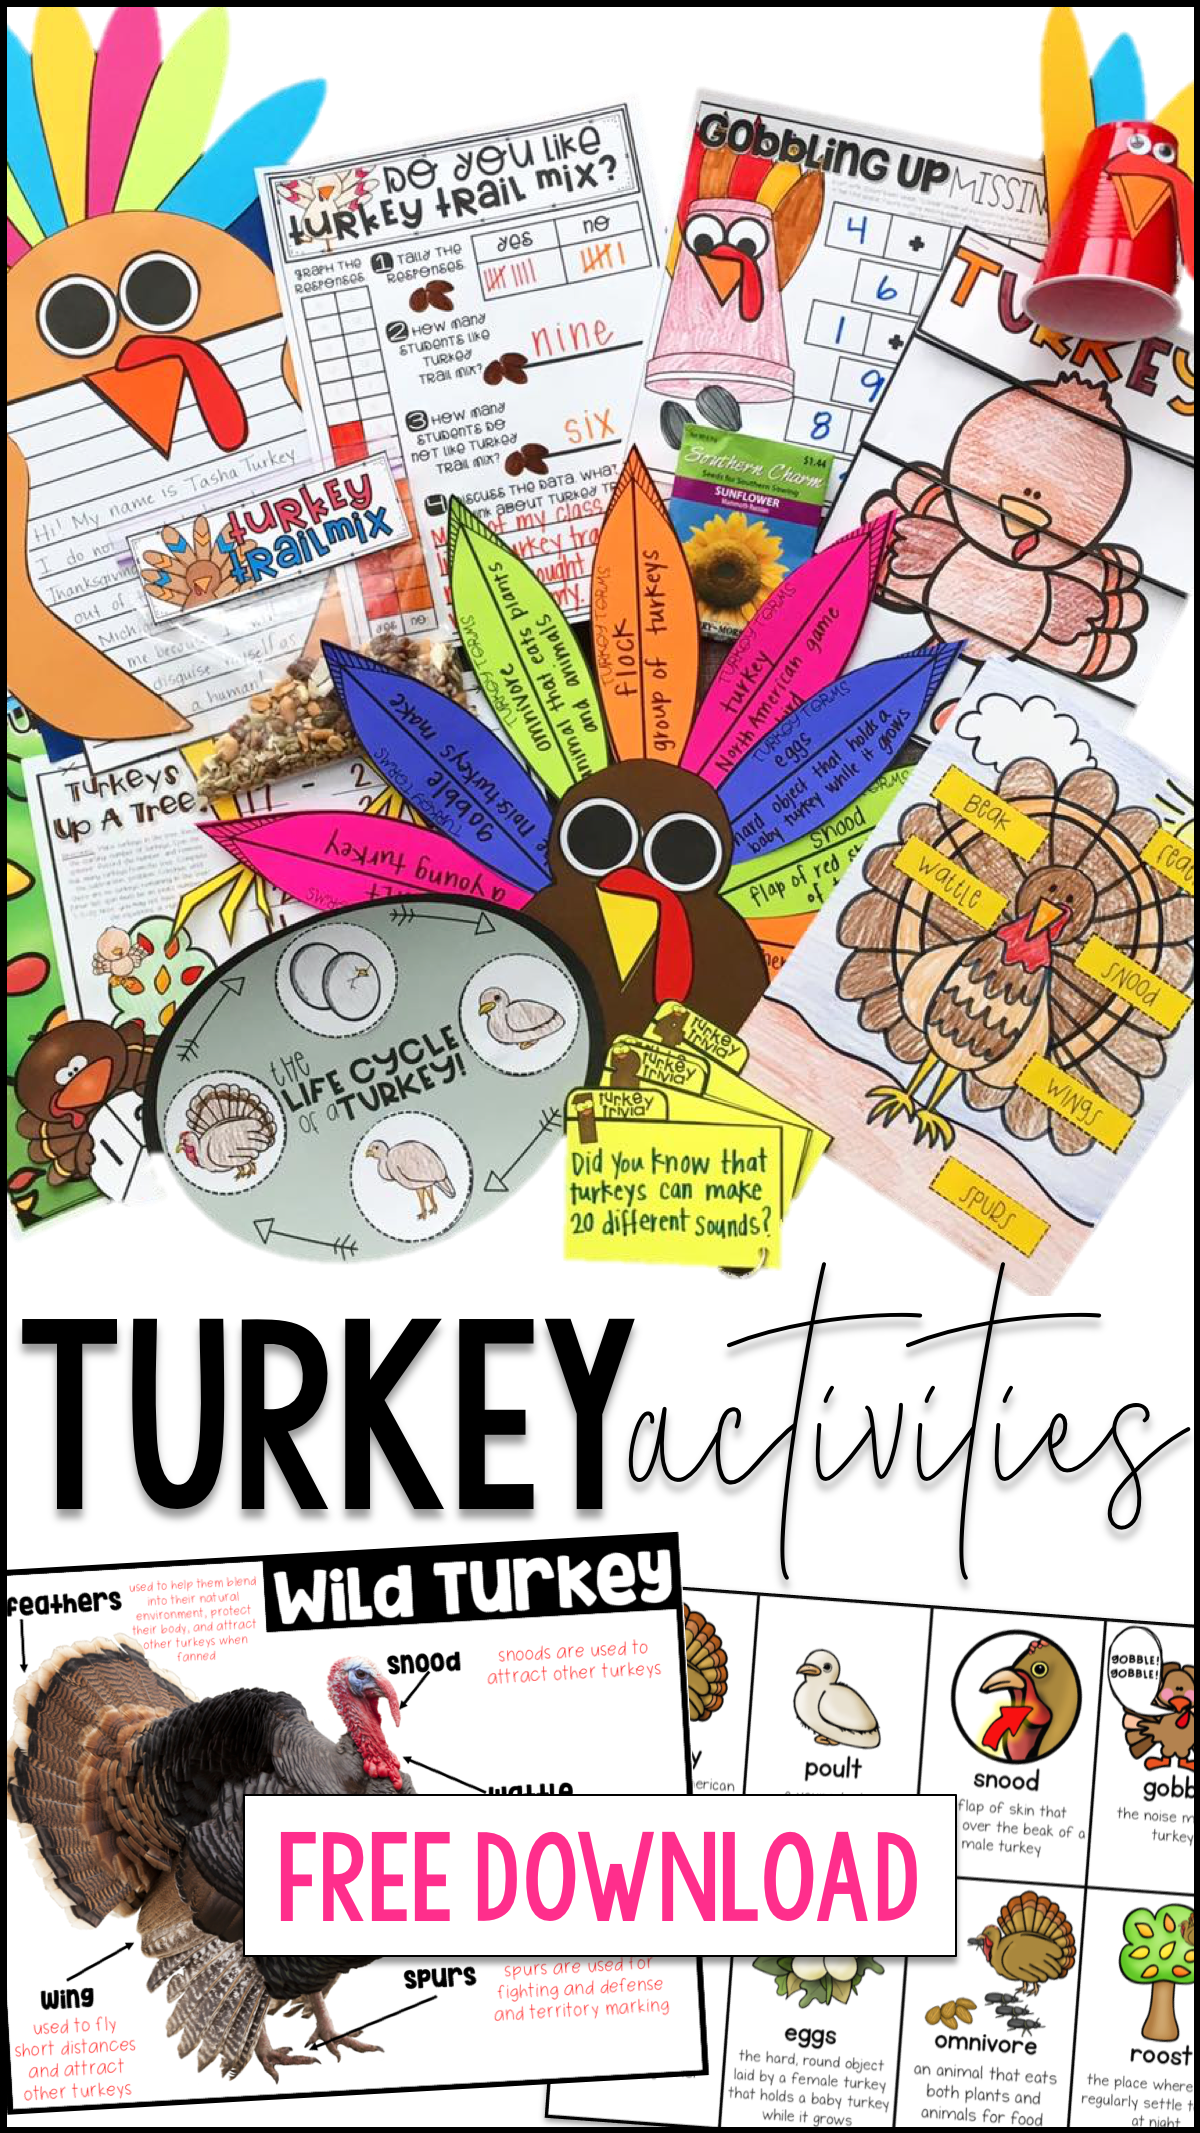 Are You Planning To Teach About Wild Turkeys This